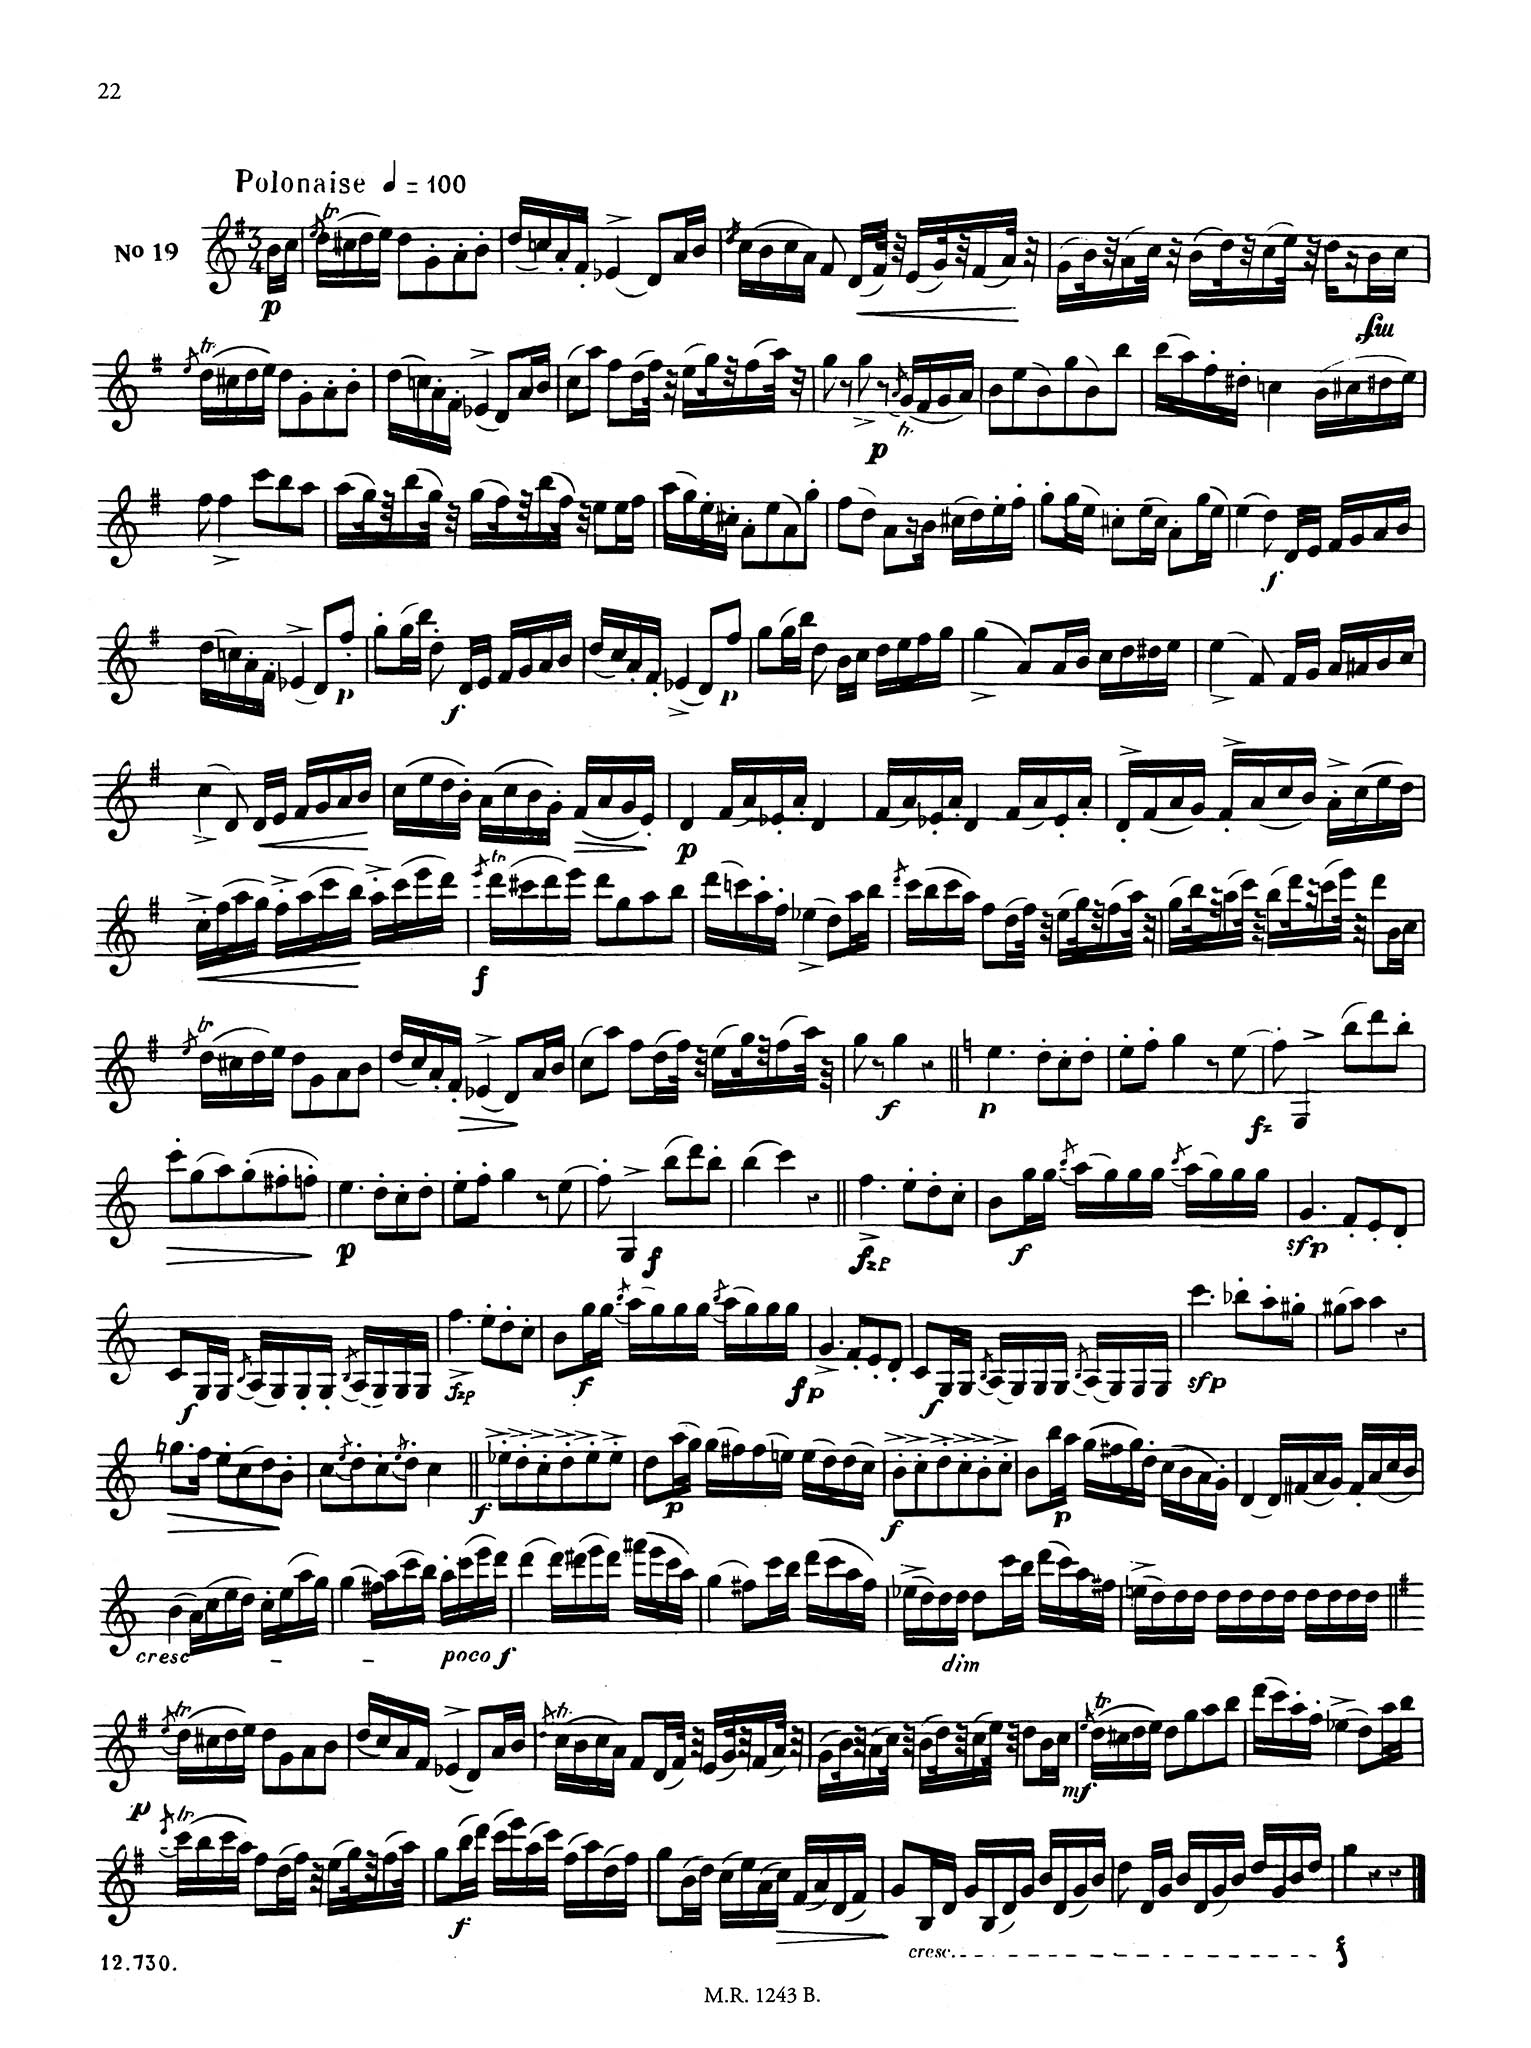 40 Etudes for Clarinet, Book 1 of 2 Page 22